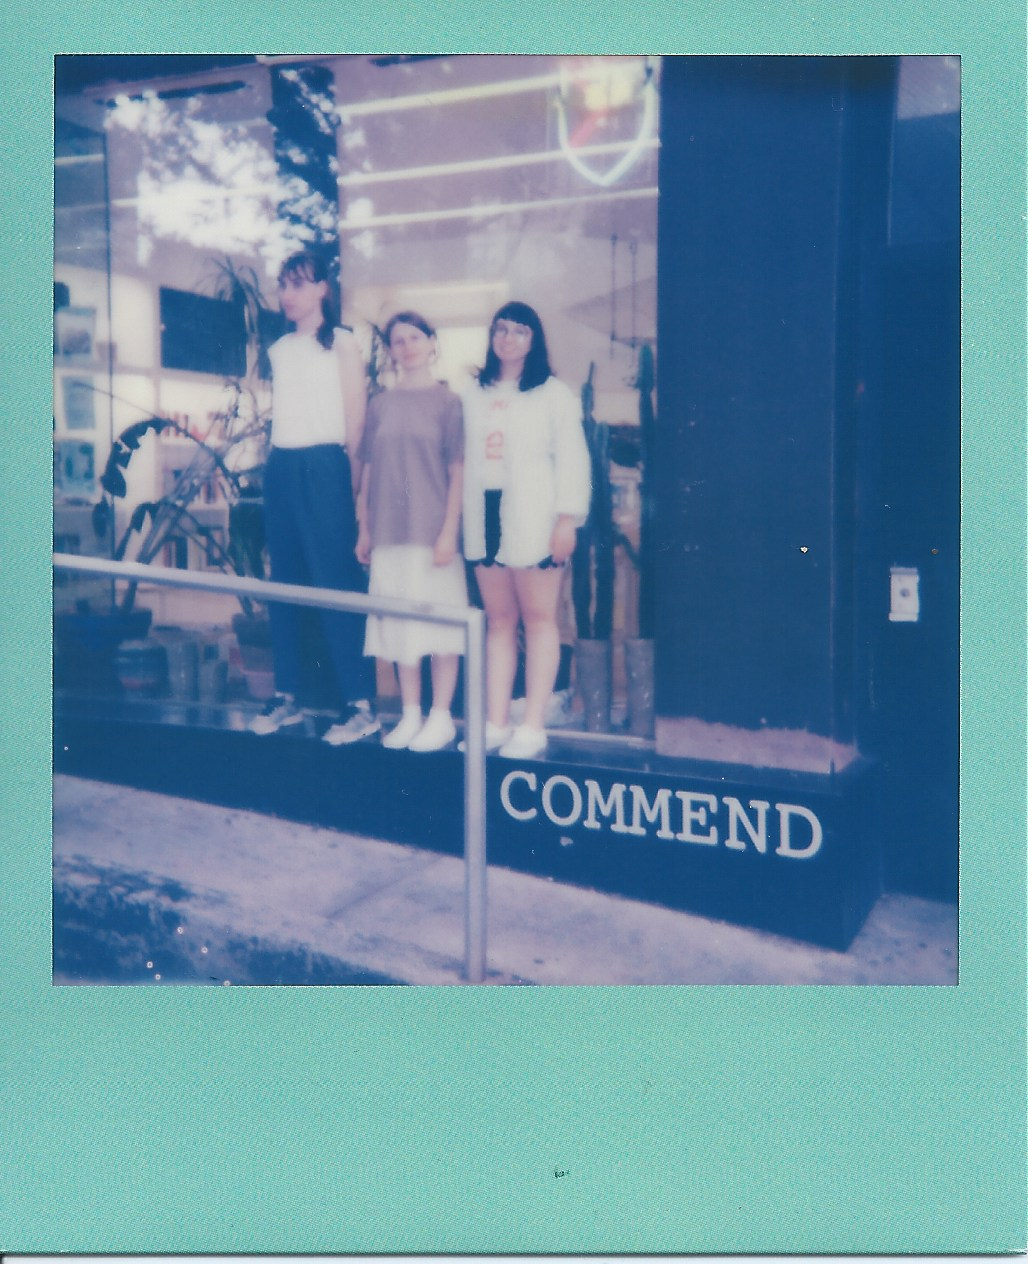 Commend Trio Photo - 001